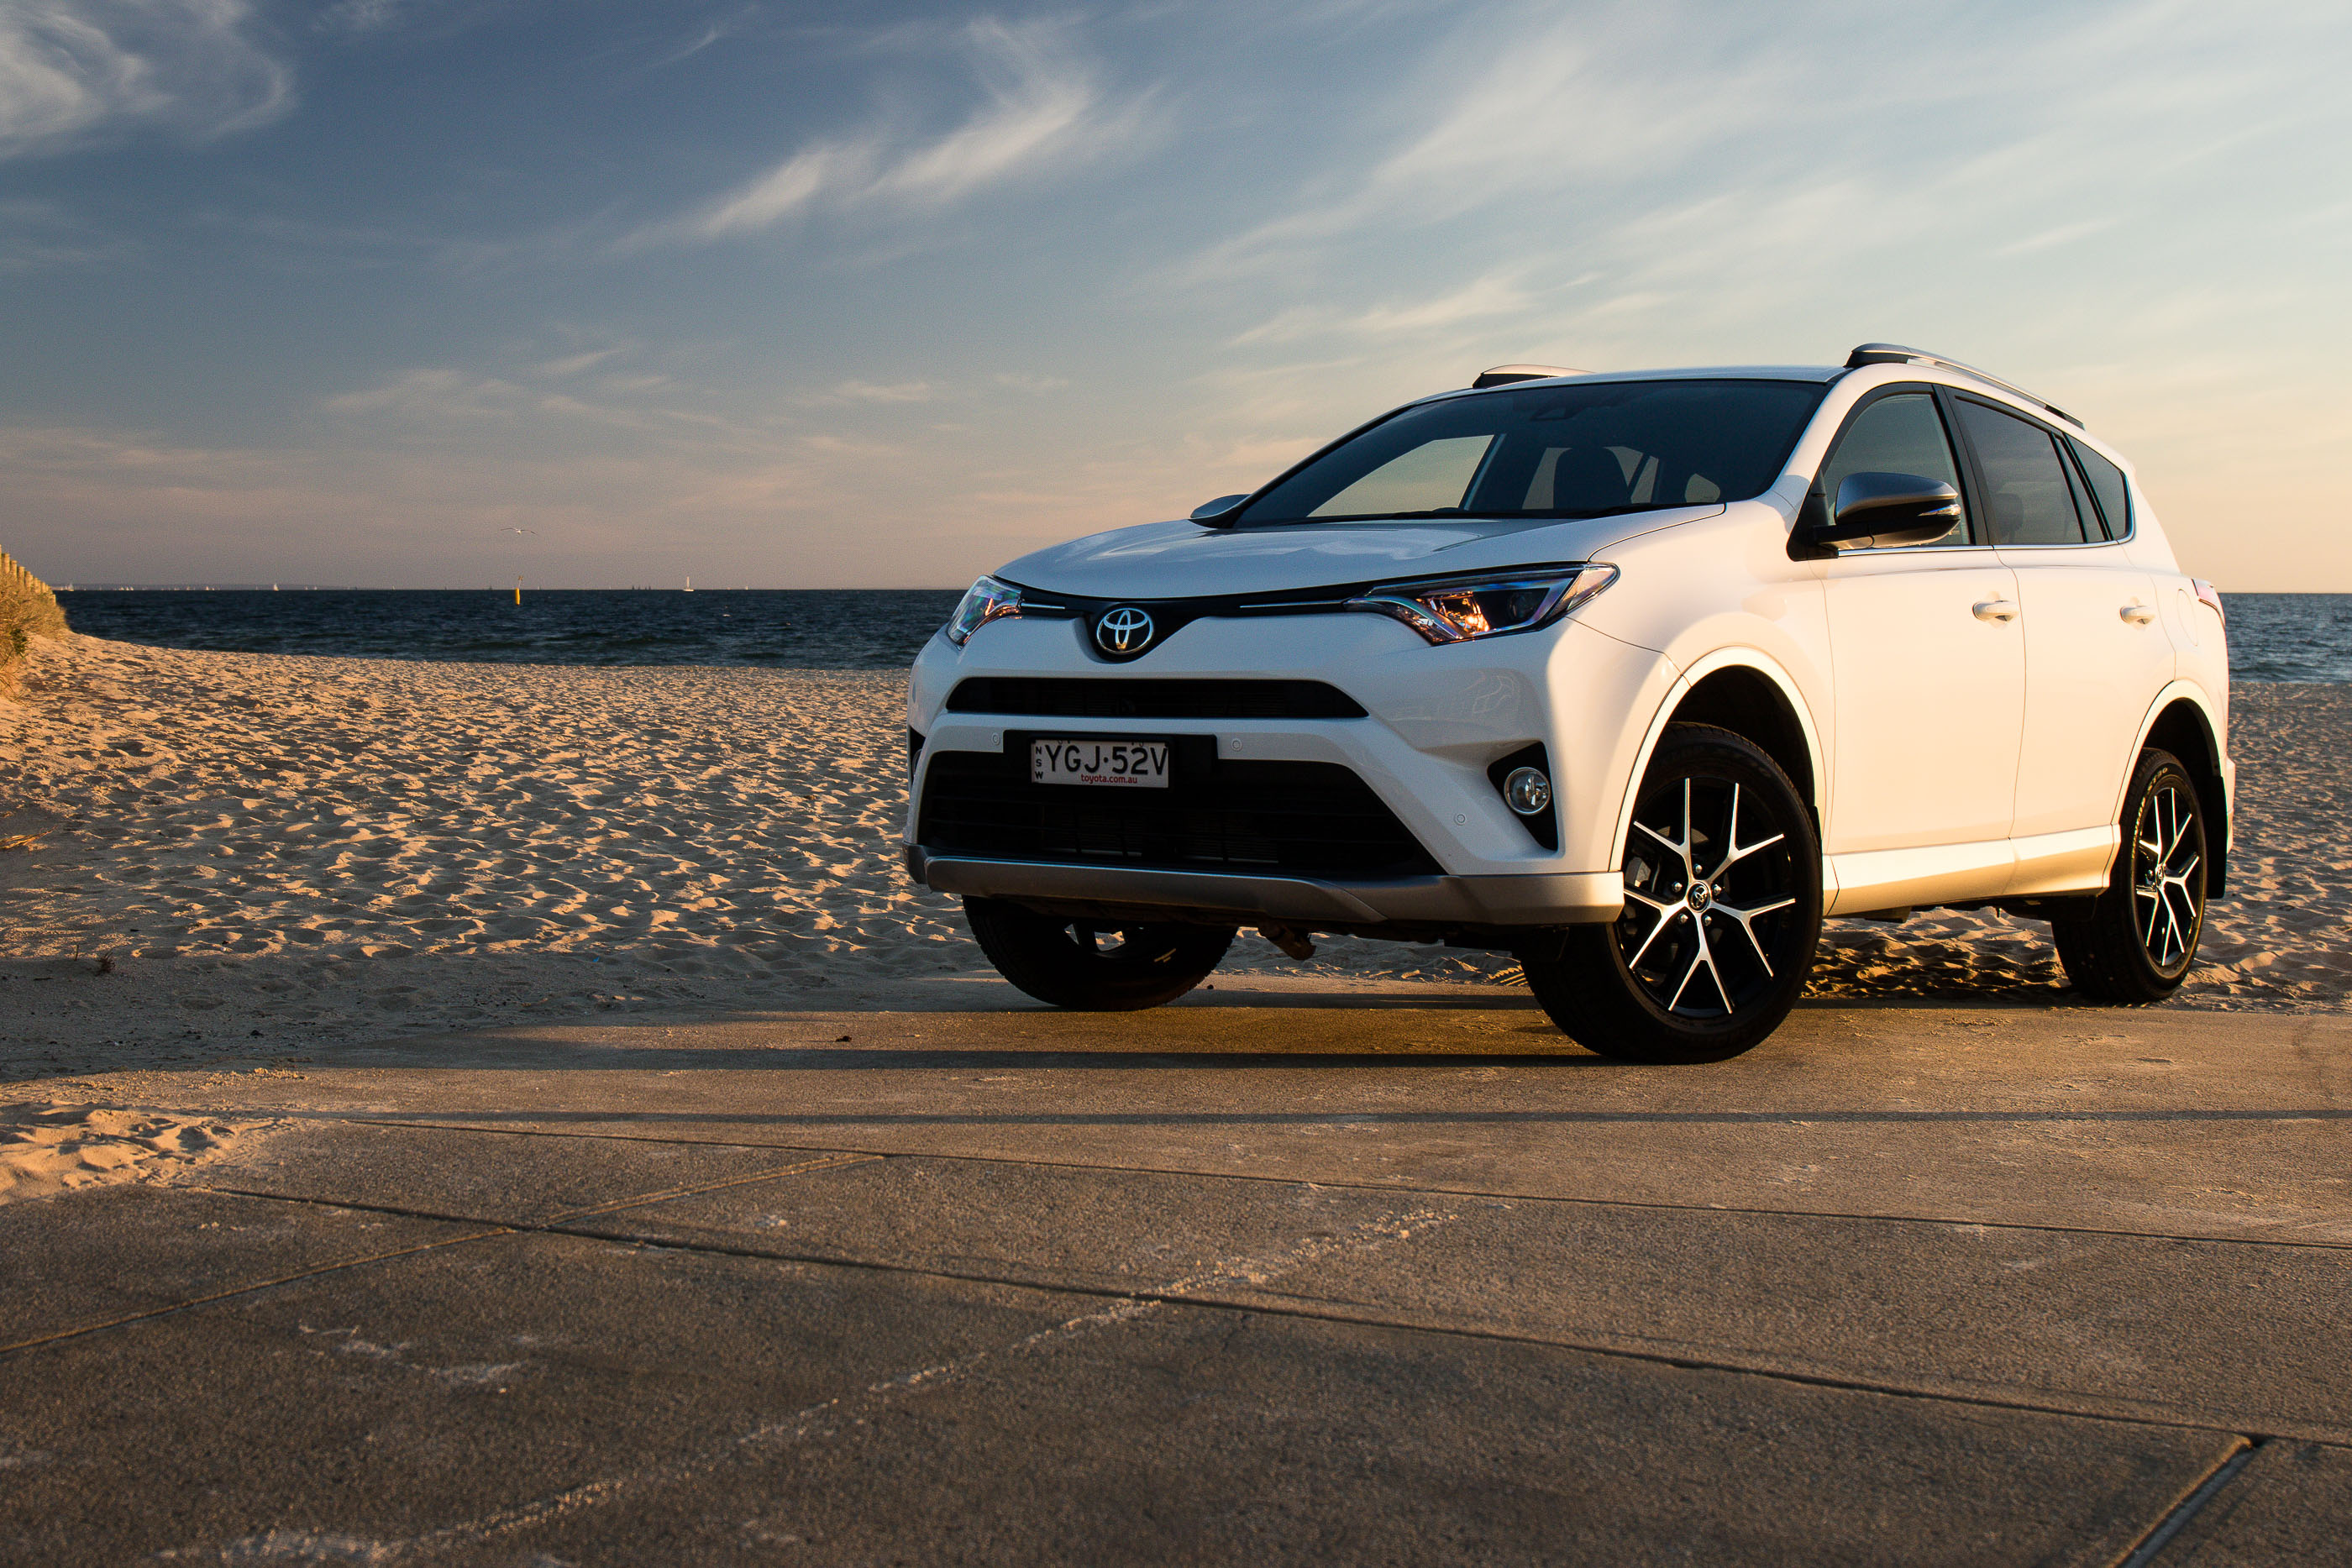 2017 toyota rav4 gxl review long term report one photos caradvice. Black Bedroom Furniture Sets. Home Design Ideas